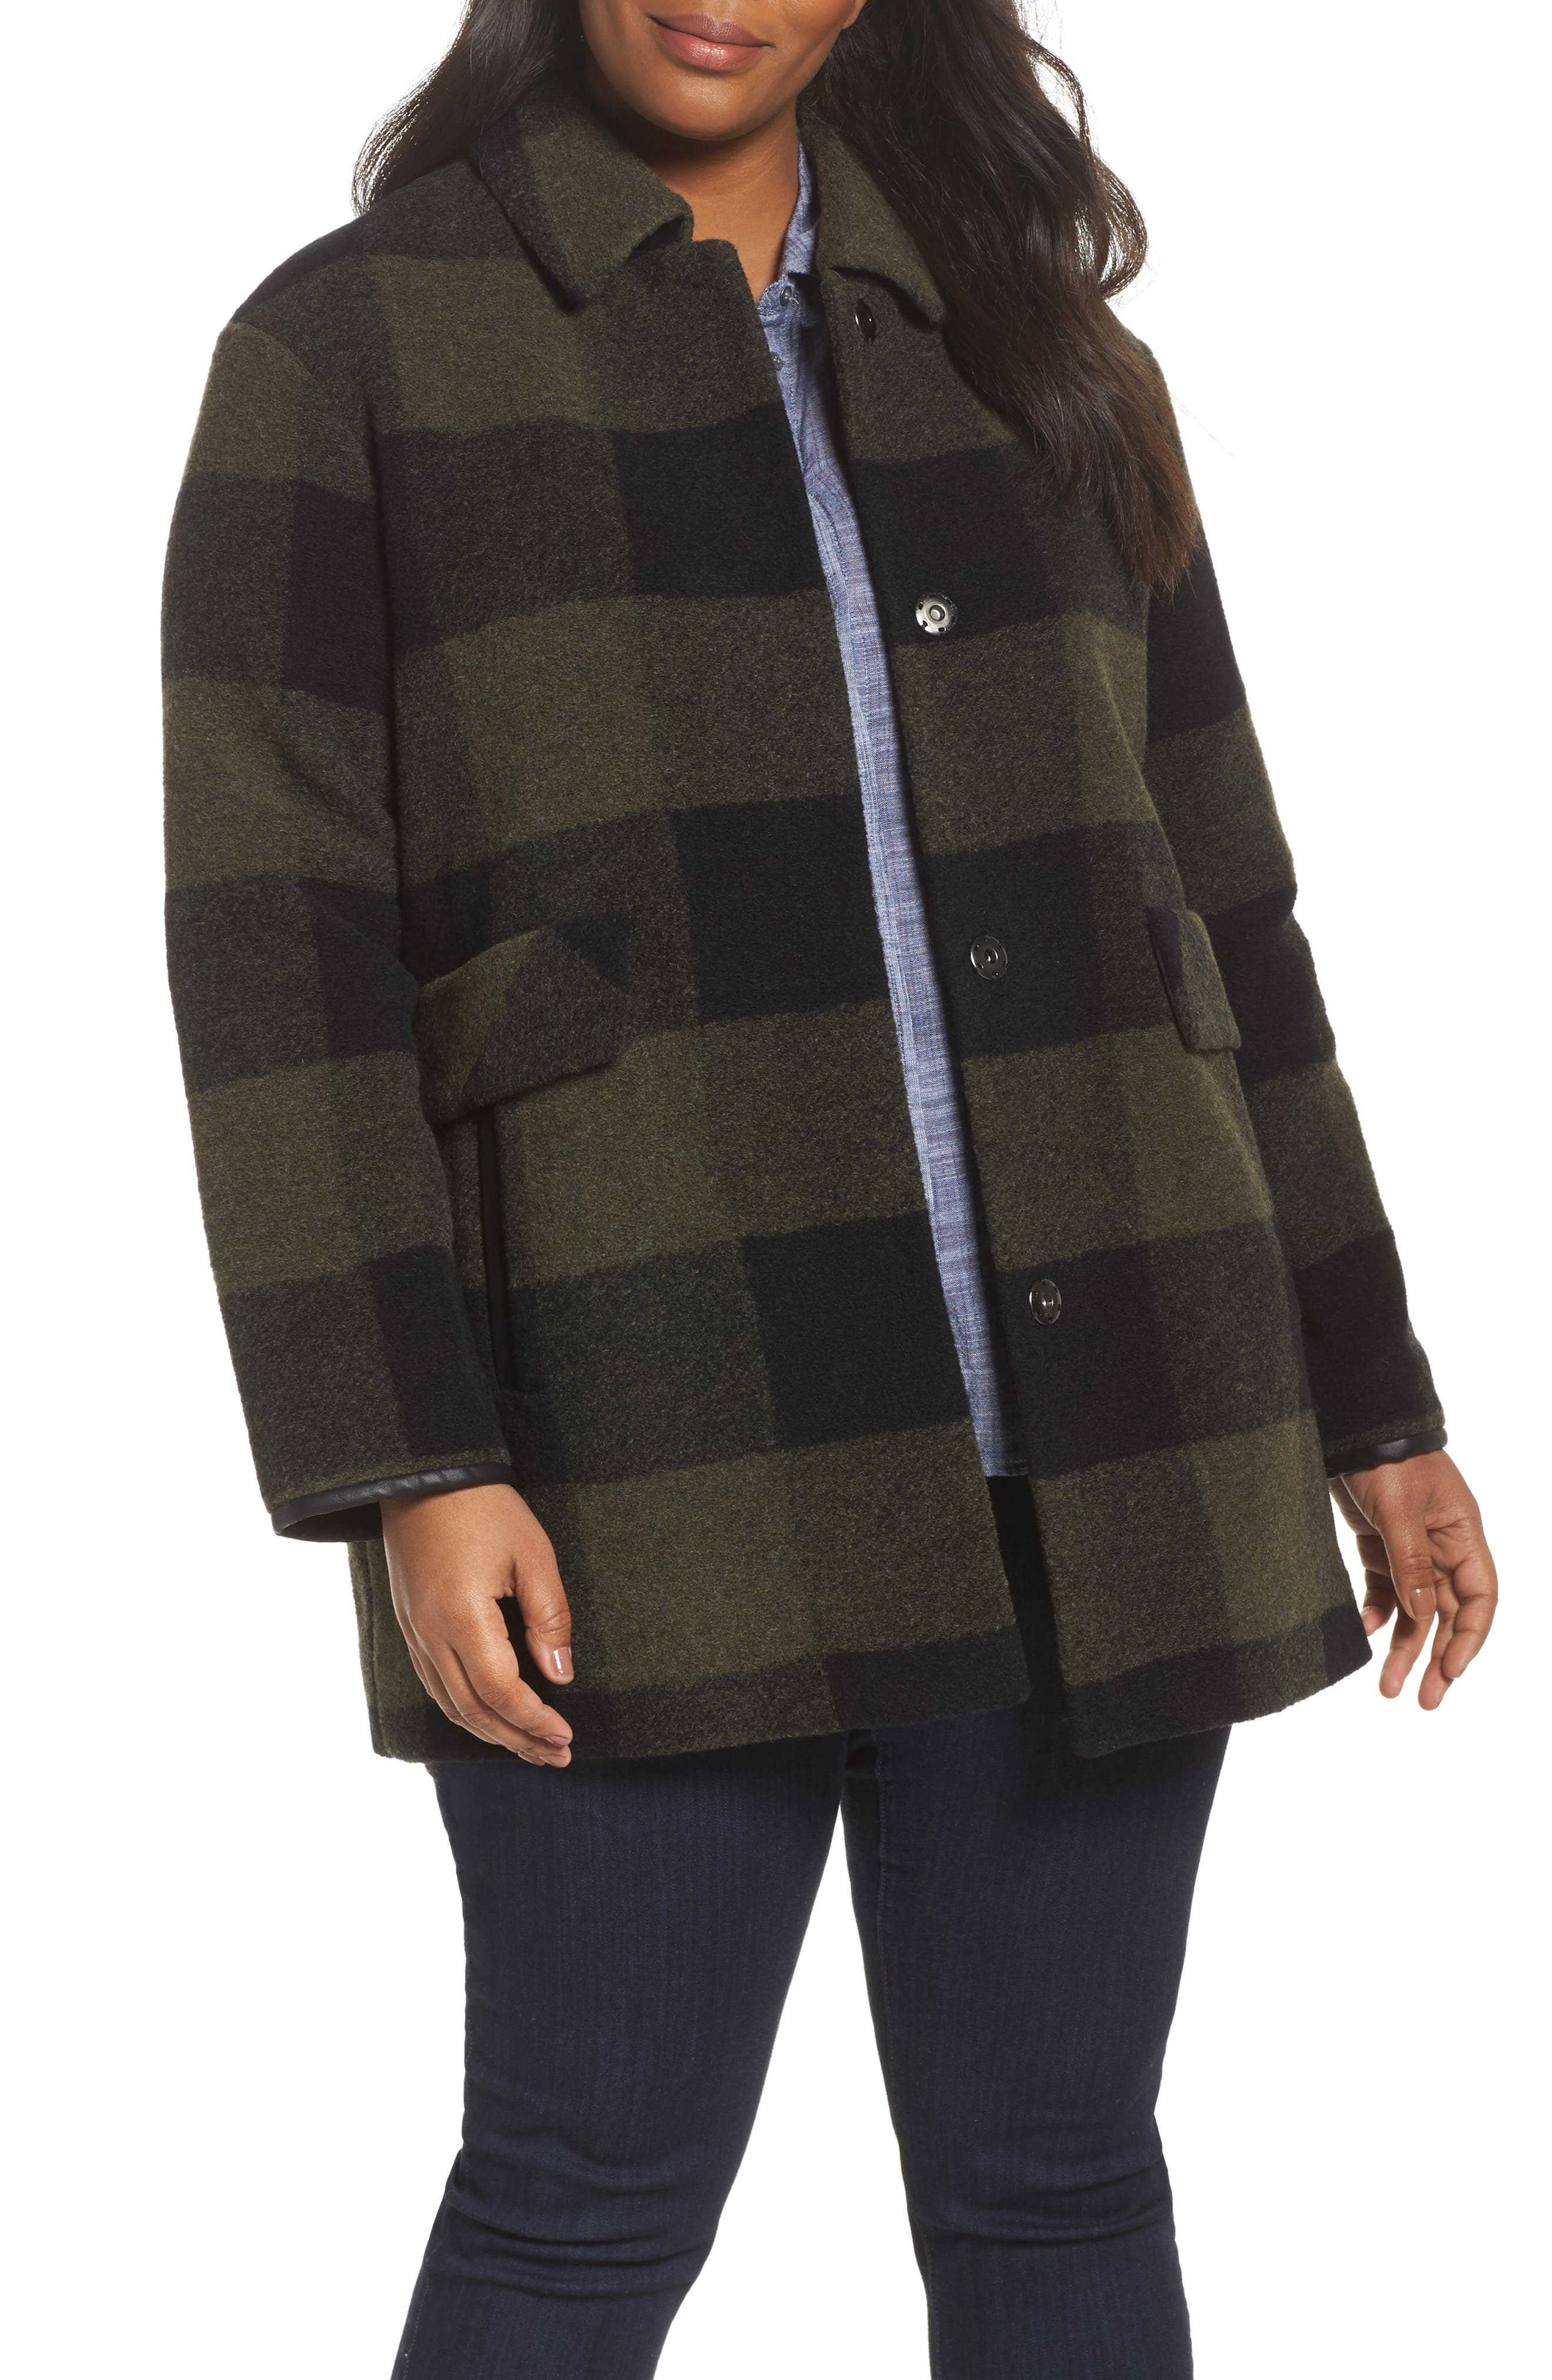 Paul Bunyan Plaid Wool Blend Barn Coat,                         Main,                         color,